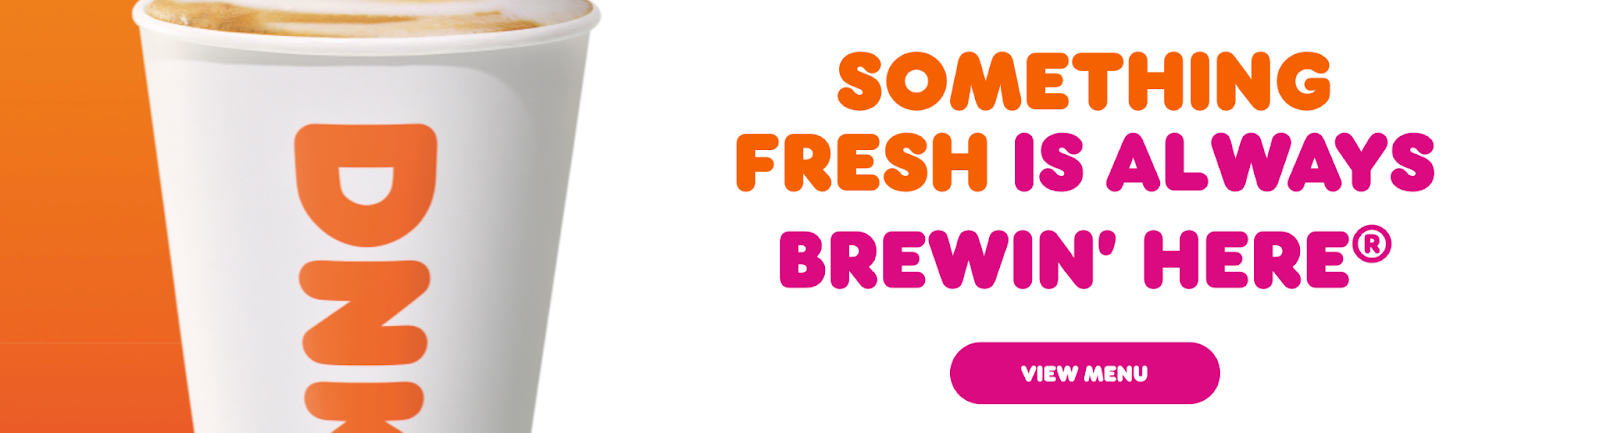 Dunkin Donut's catchy landing page.